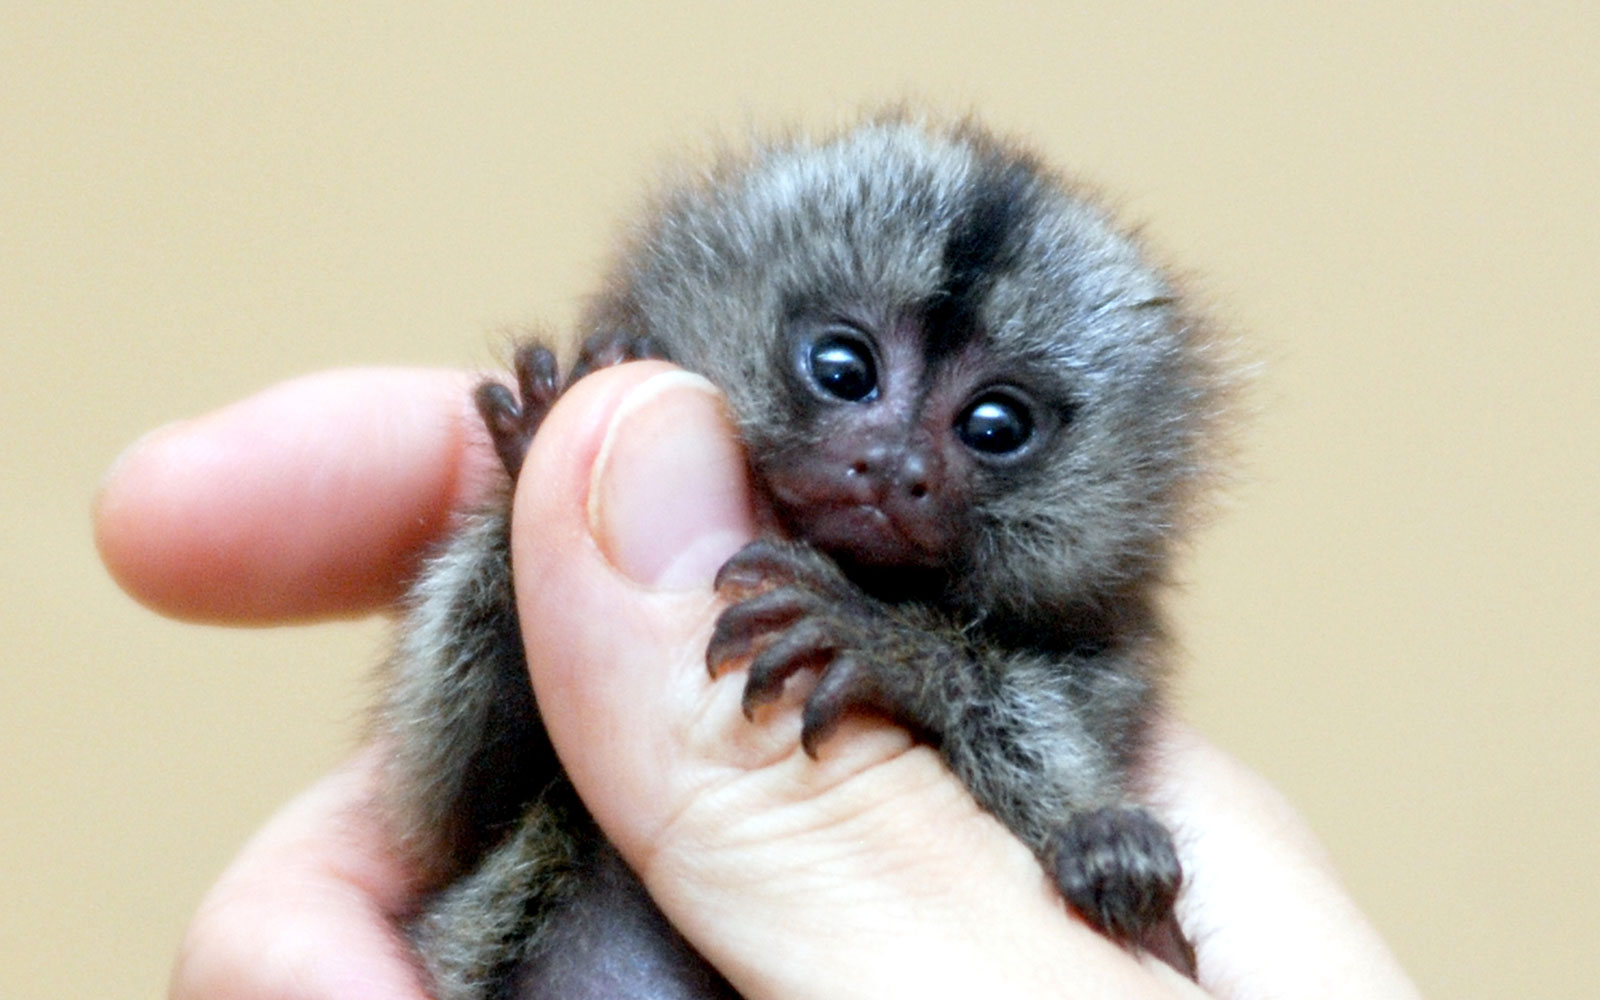 Man's Emotional Support Marmoset Disrupts Las Vegas Flight